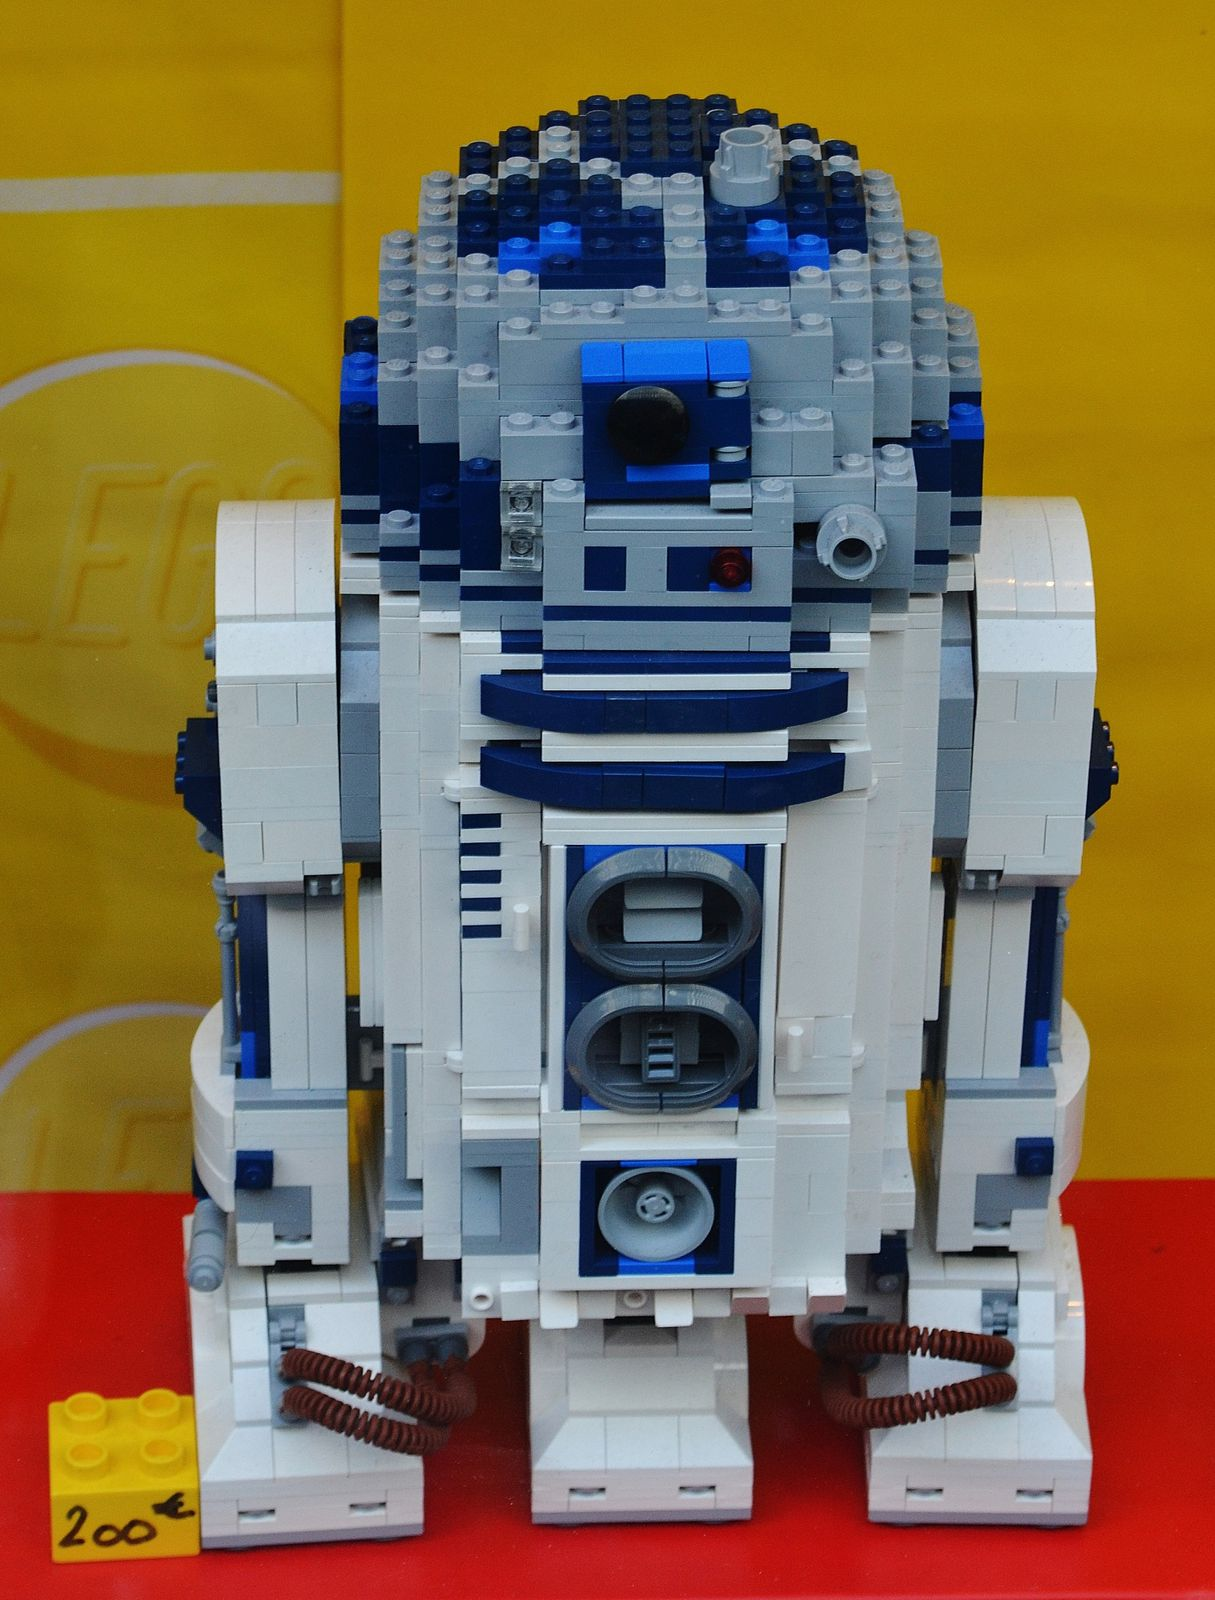 R2D2 en LEGO. J'adore. May the force be with you.